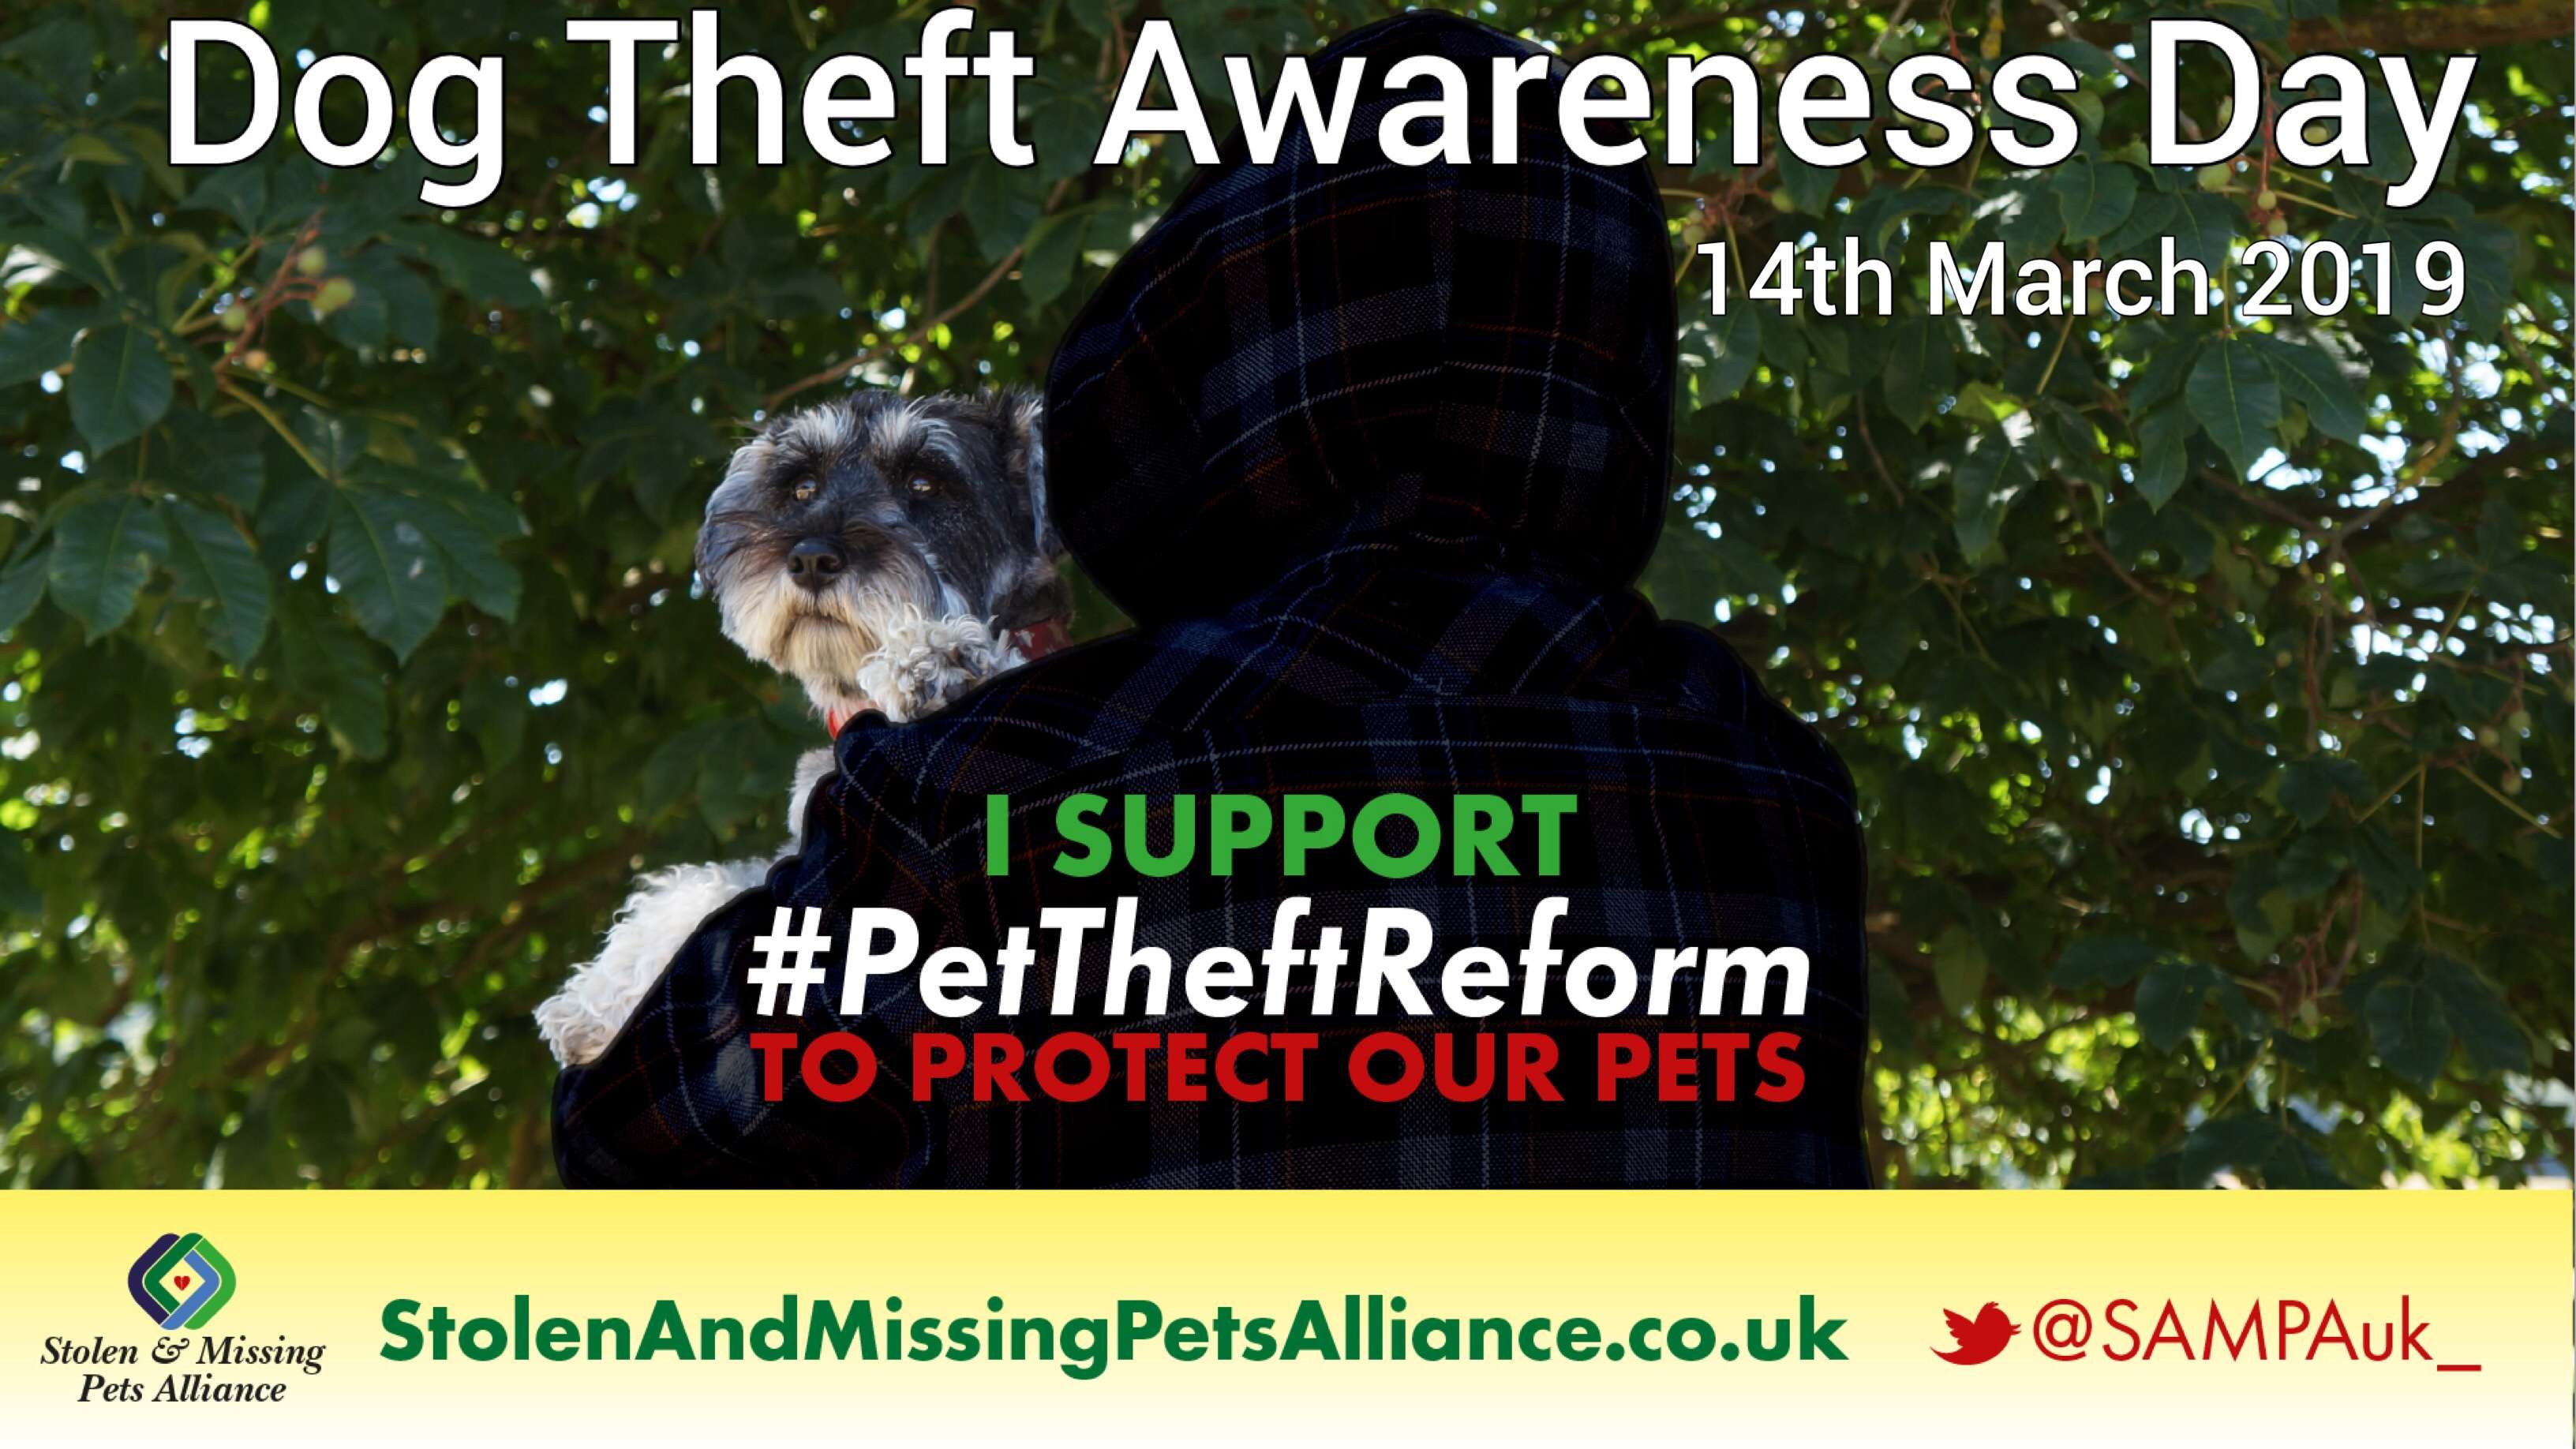 #DogTheftAwarenessDay 14th March 2019.